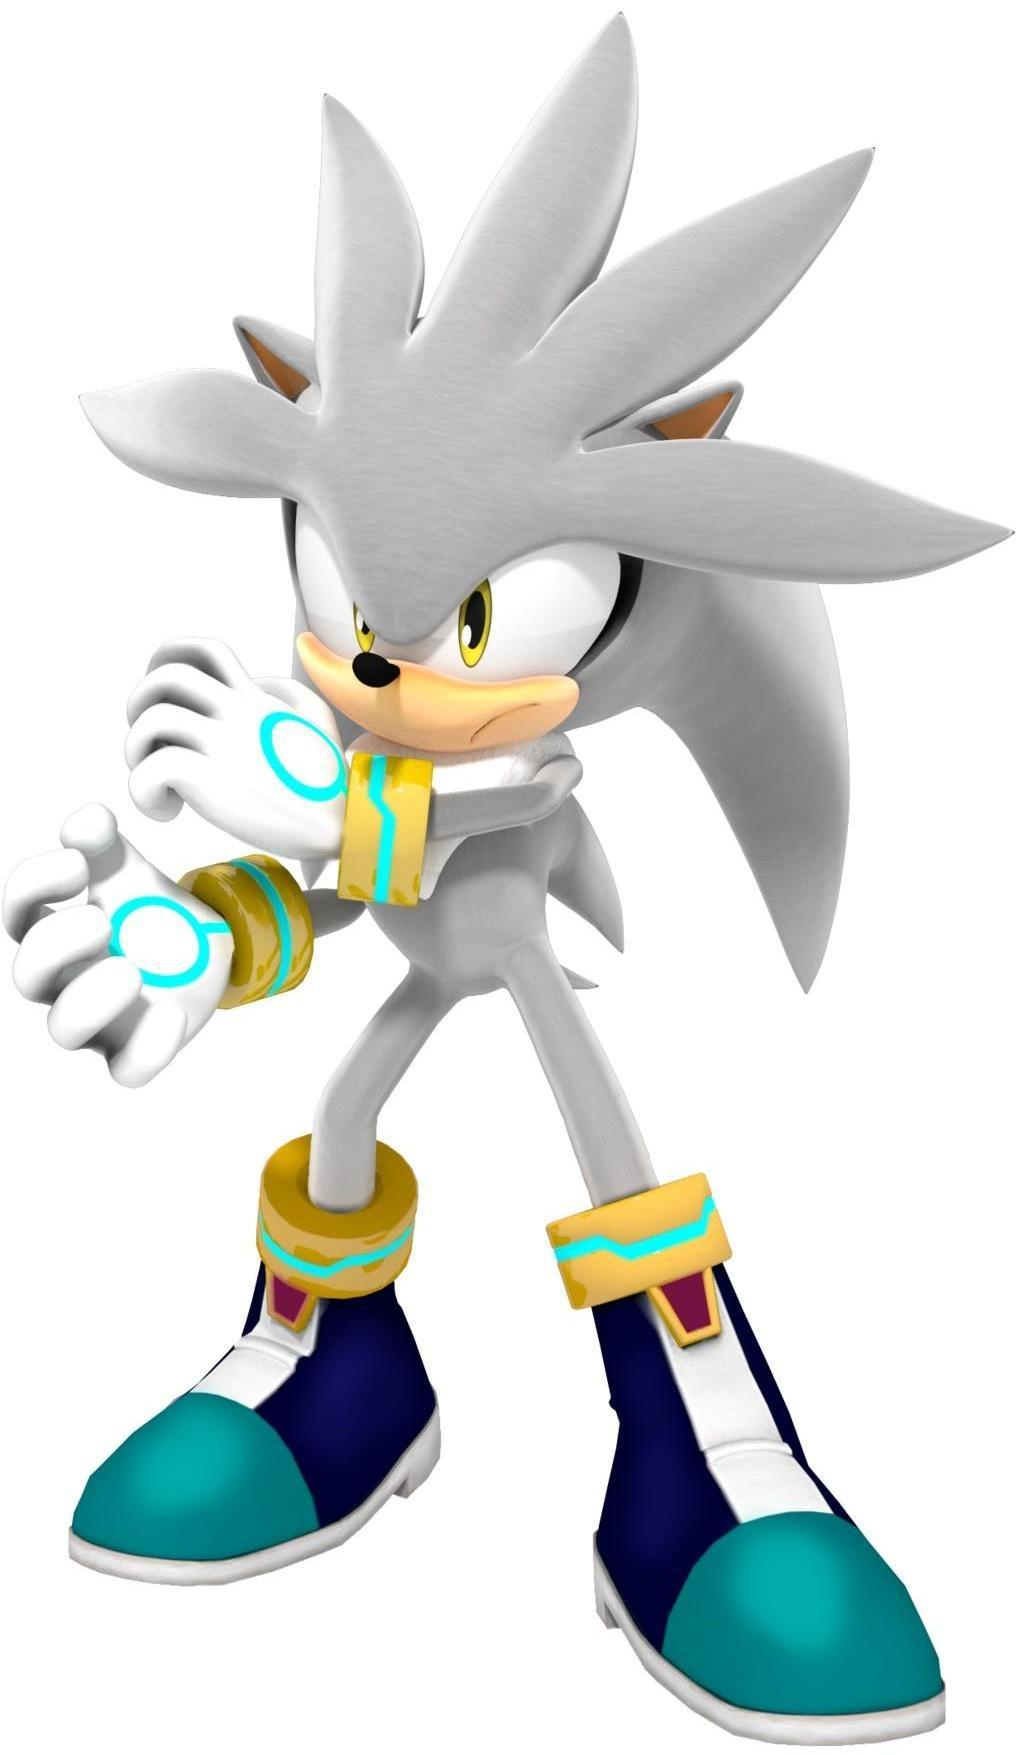 Silver_the_Hedgehog